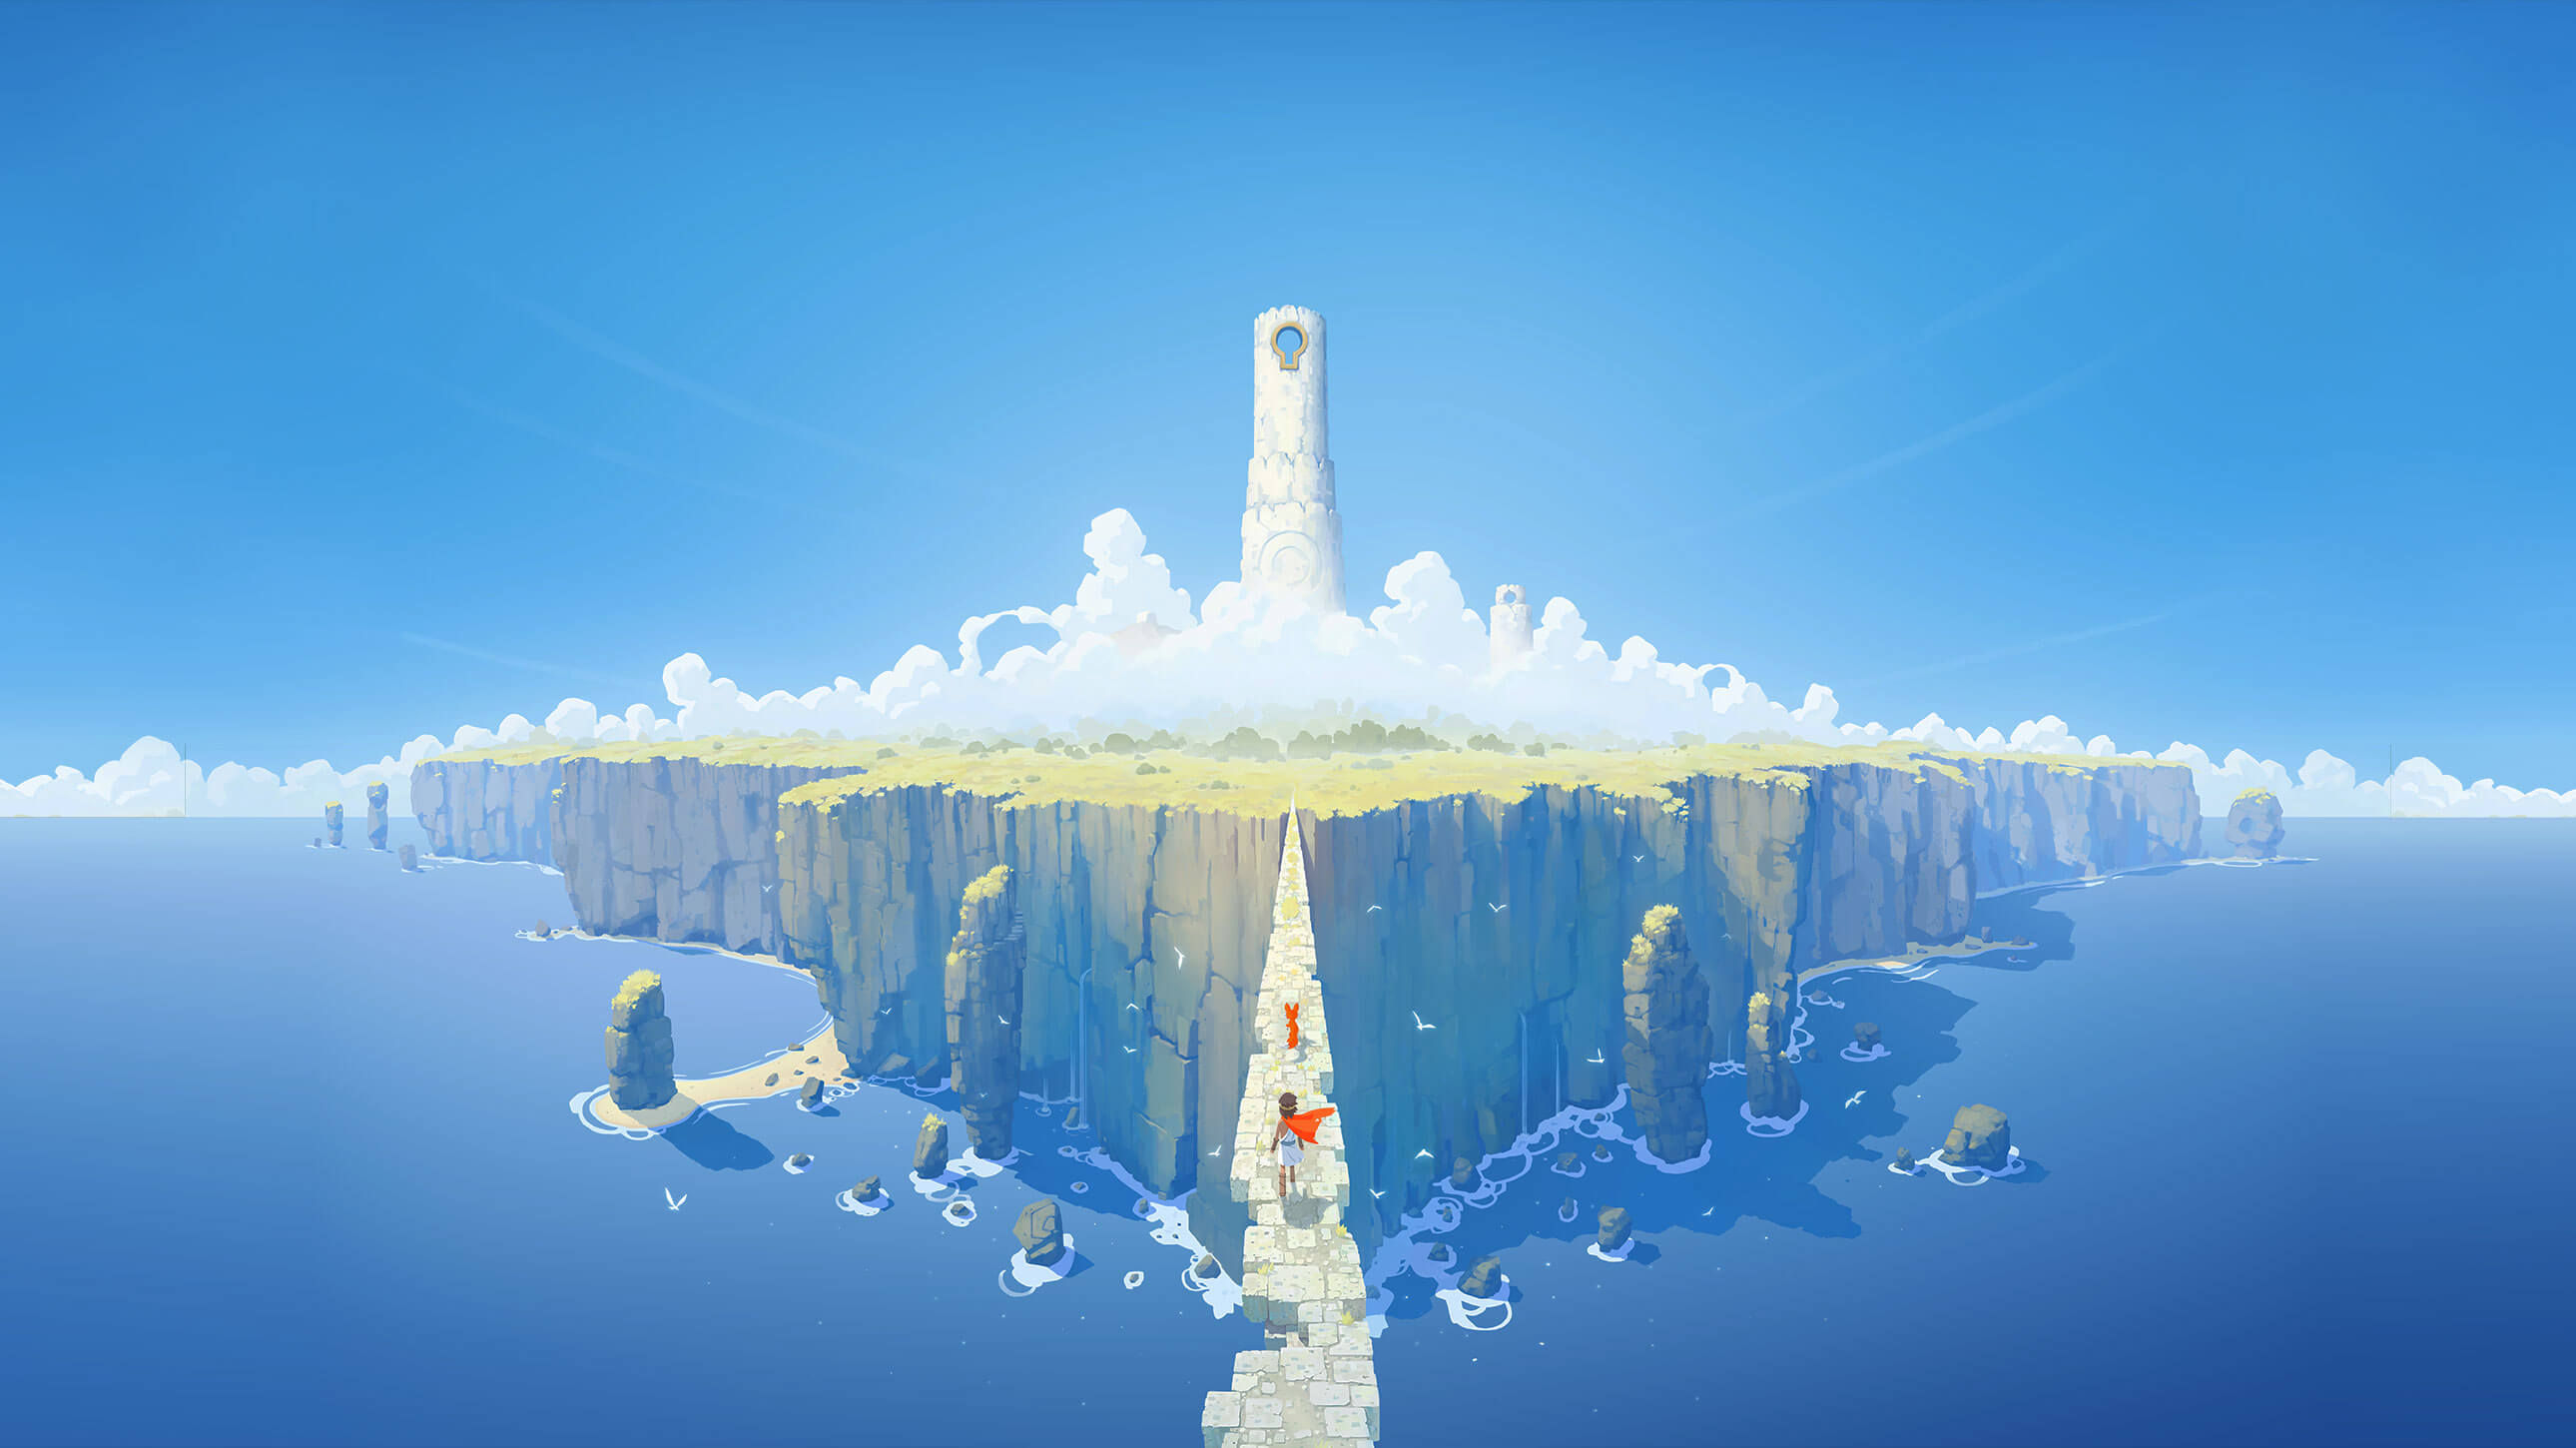 [Epic Games Store] RiME (Free / 100% off)